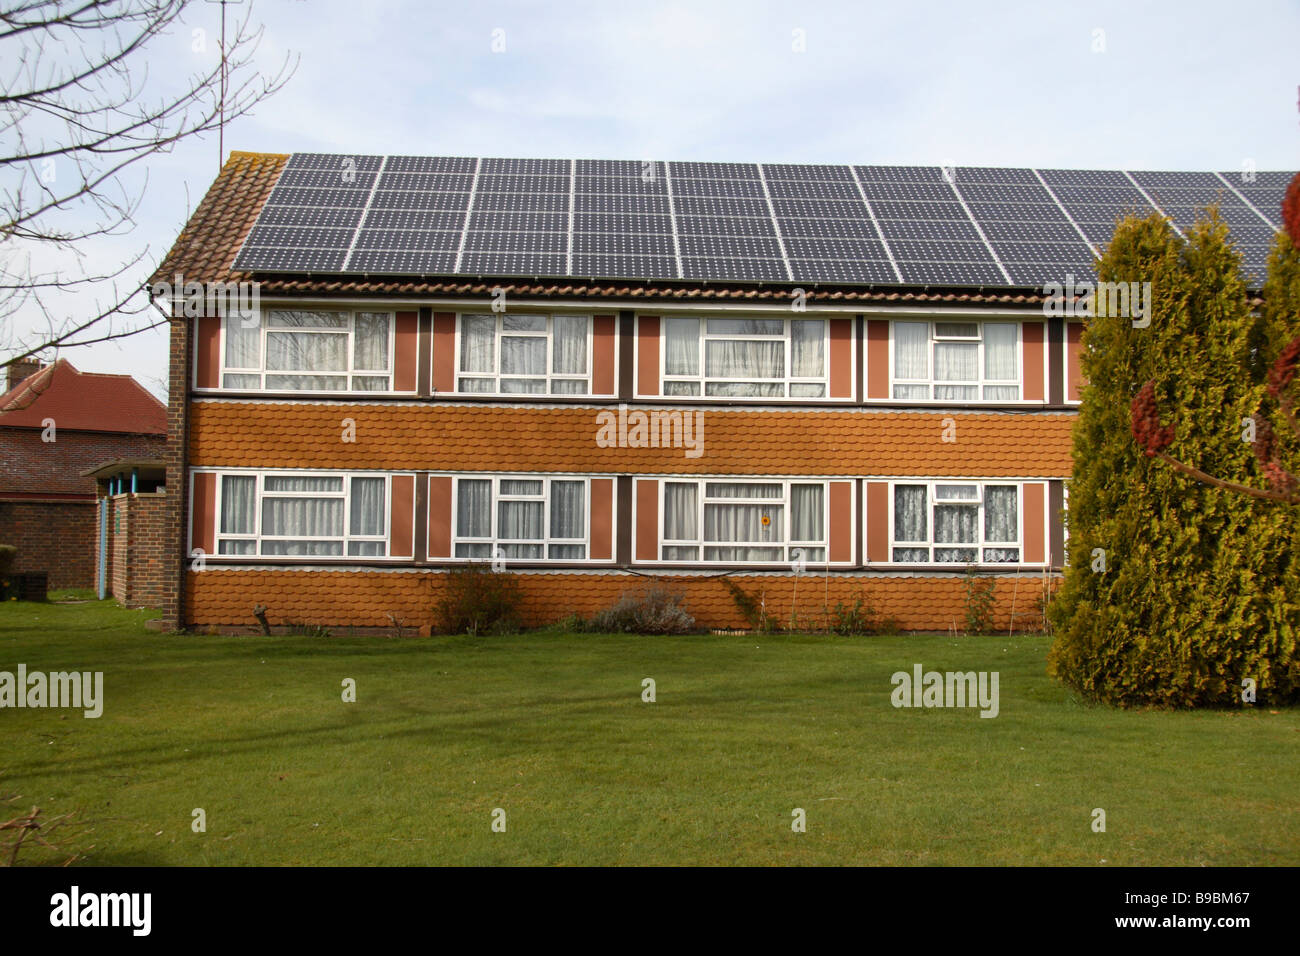 Solar panels on the roof of a residential home in south west London. - Stock Image